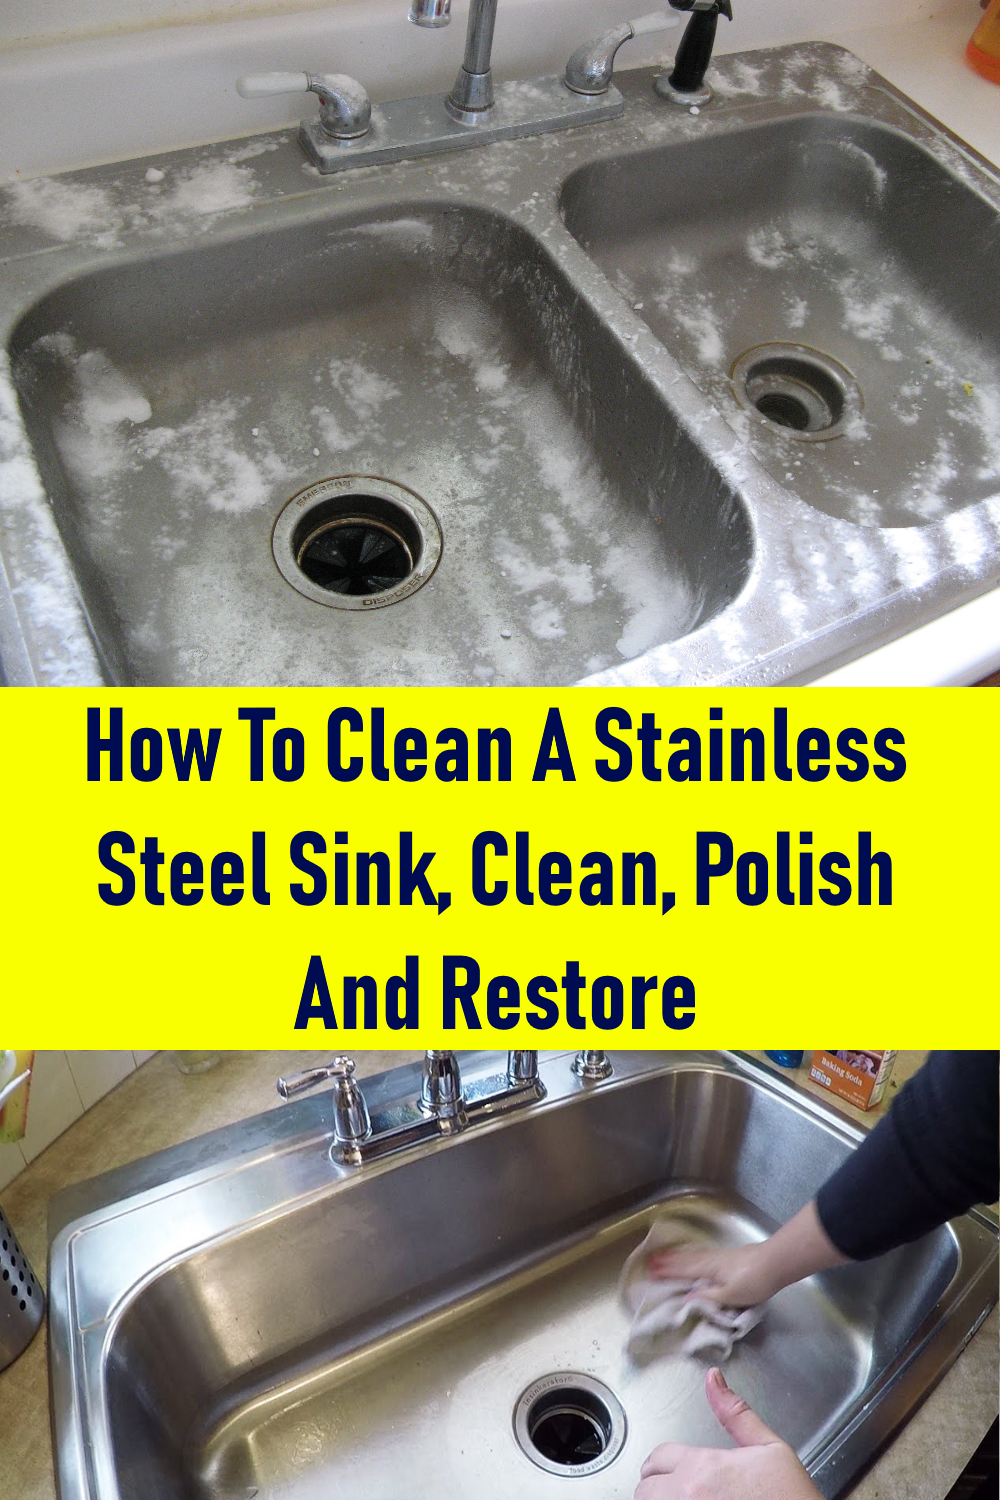 How To Clean A Stainless Steel Sink Clean Polish And Restore